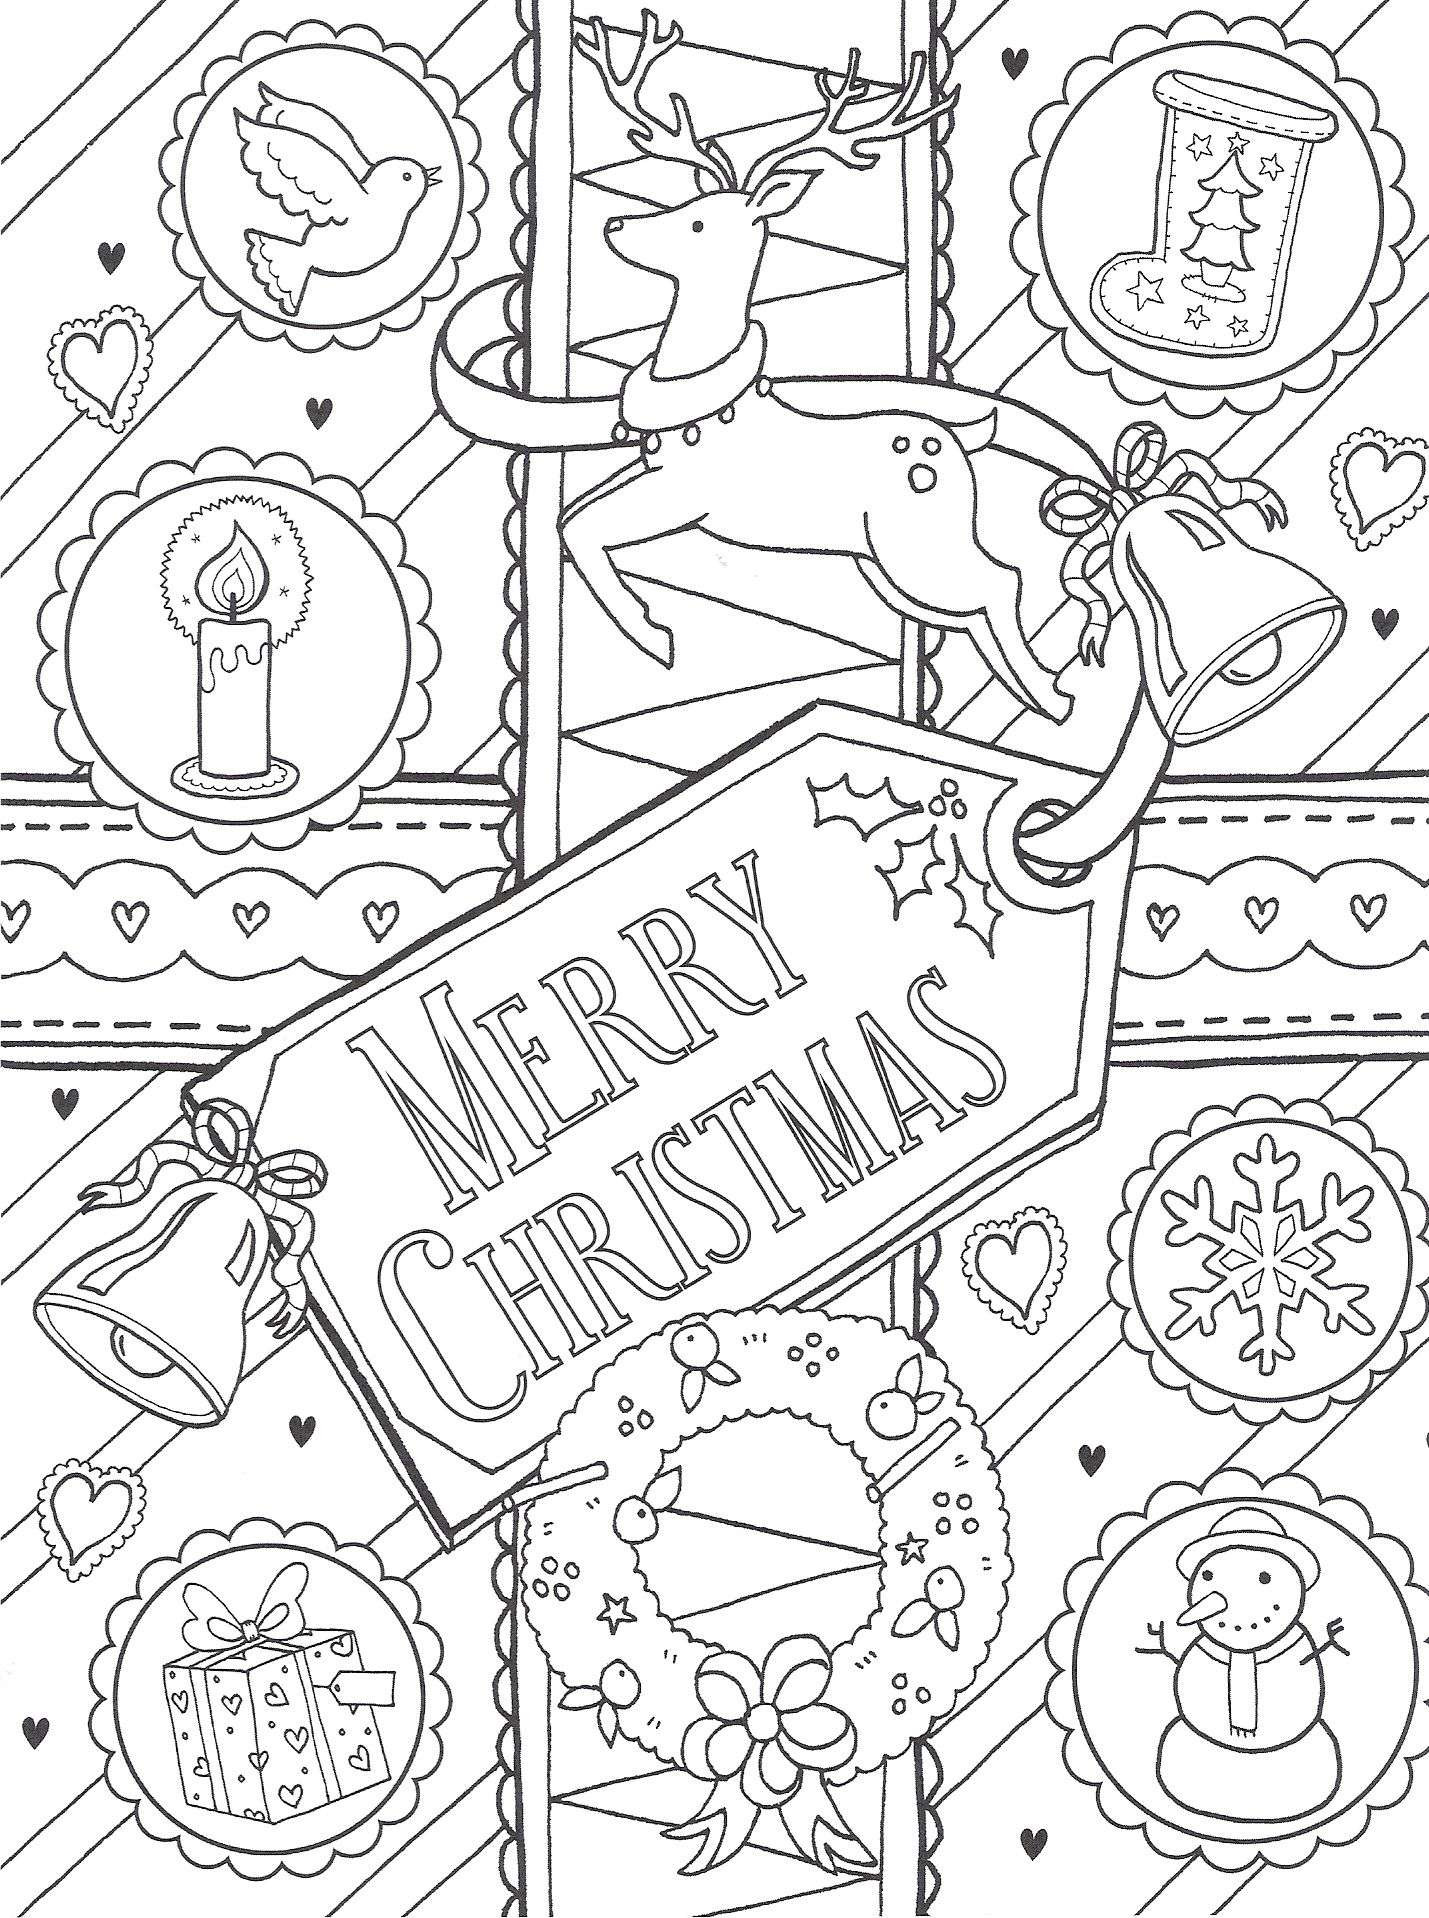 Christmas Wreath Coloring Sheet With Page Of Manger Scene Lovely Wreaths